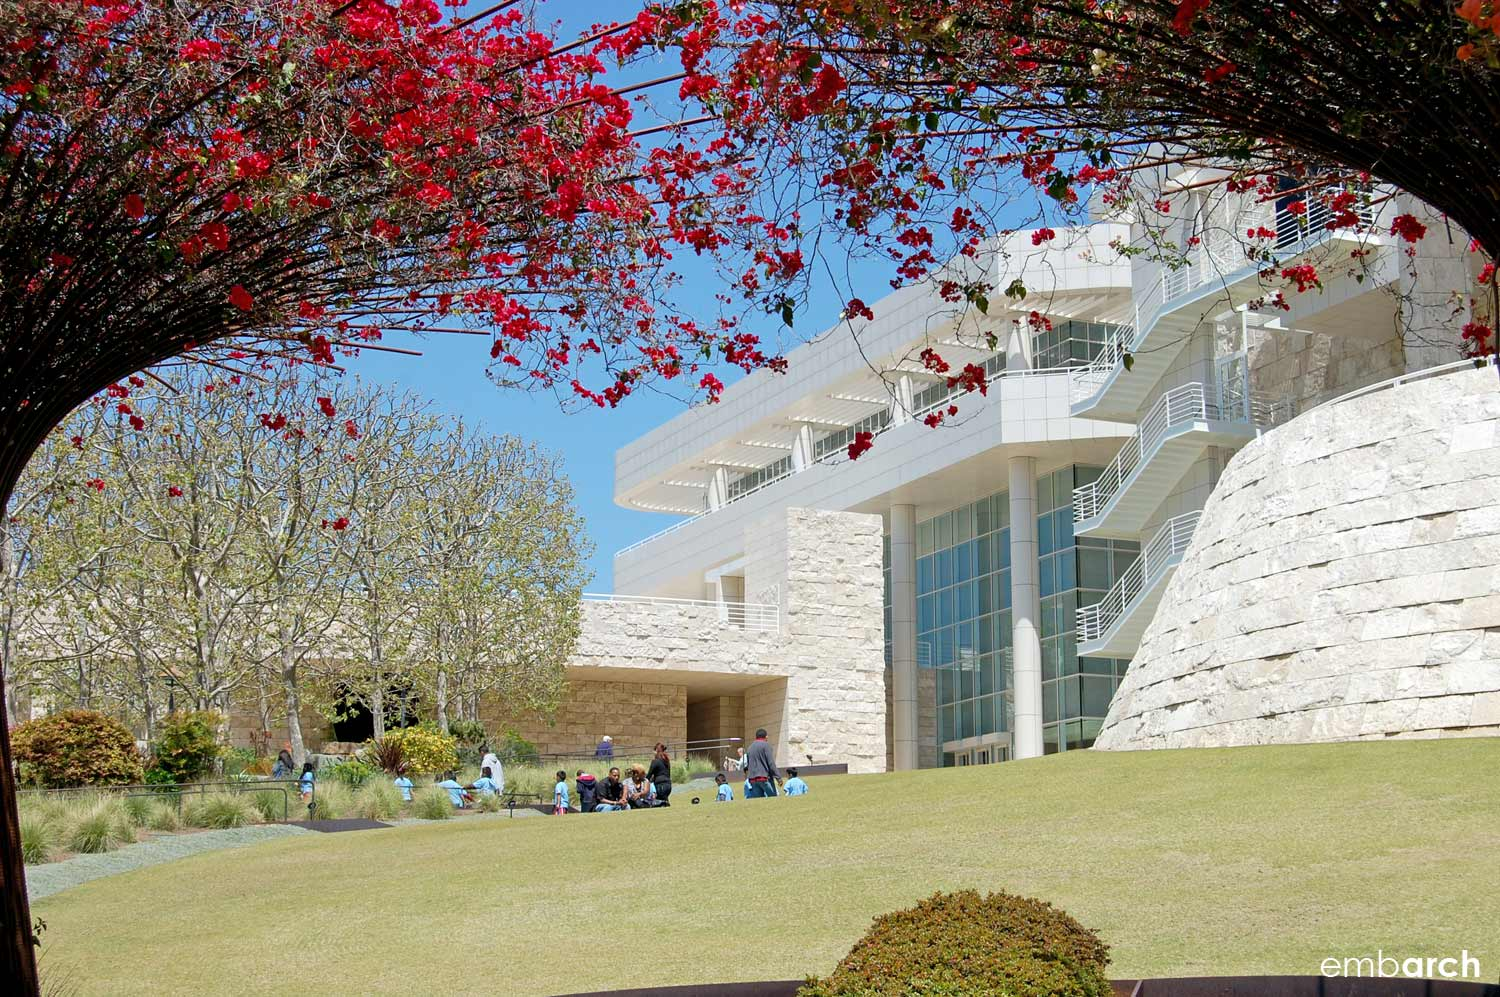 Getty Center - exterior view from lawn